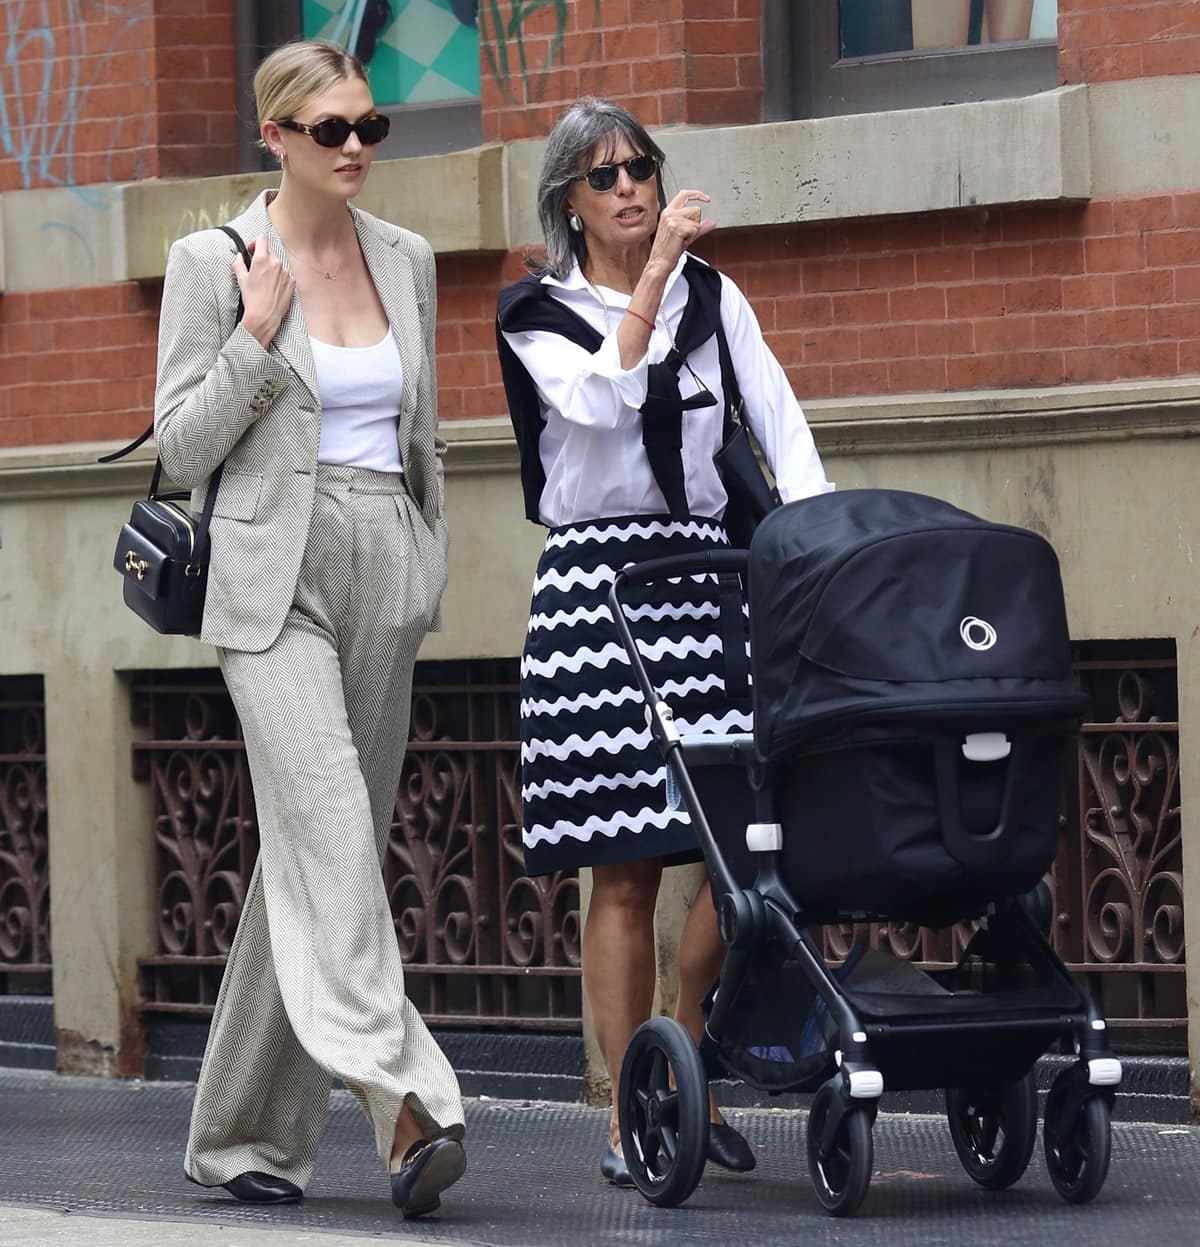 Karlie Kloss looks stylish while out shopping with her baby Levi Joseph and mother-in-law Seryl Kushner